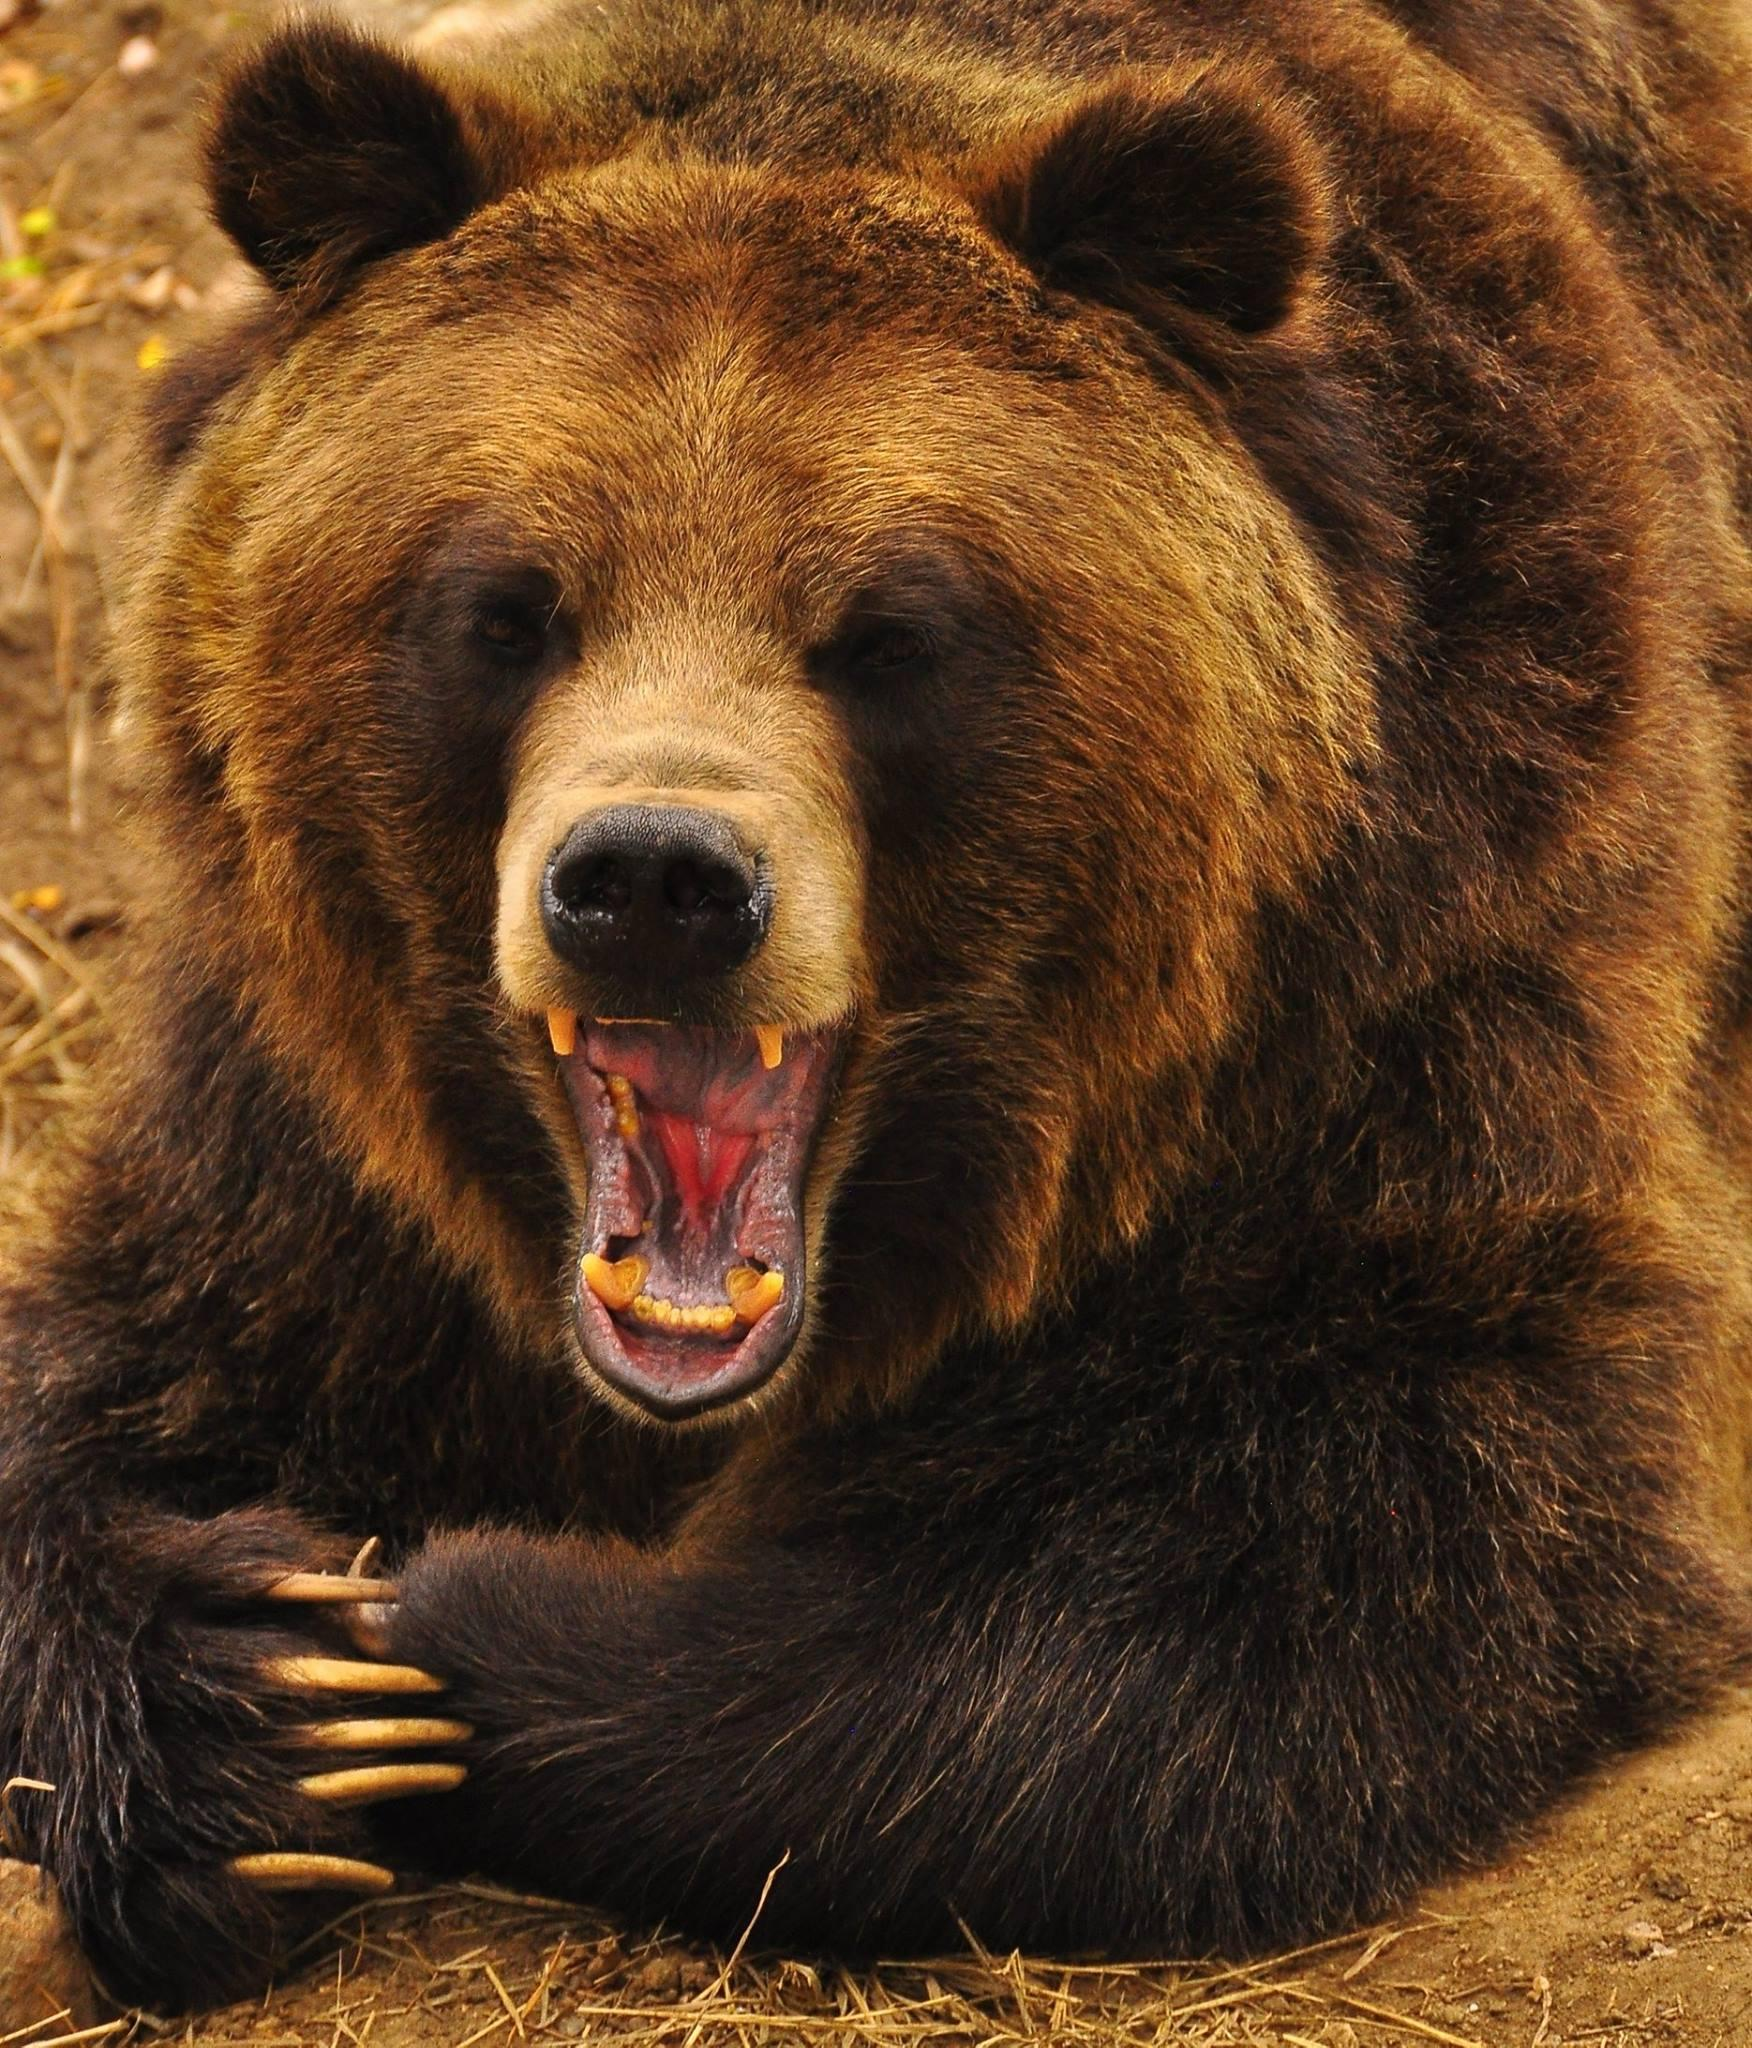 Today's #FanPhotoFriday was shared by Sheri Kerley. She captured Digger, one of #CMZoo's grizzy bears, during a yawn! http://t.co/cMTtjLlAye